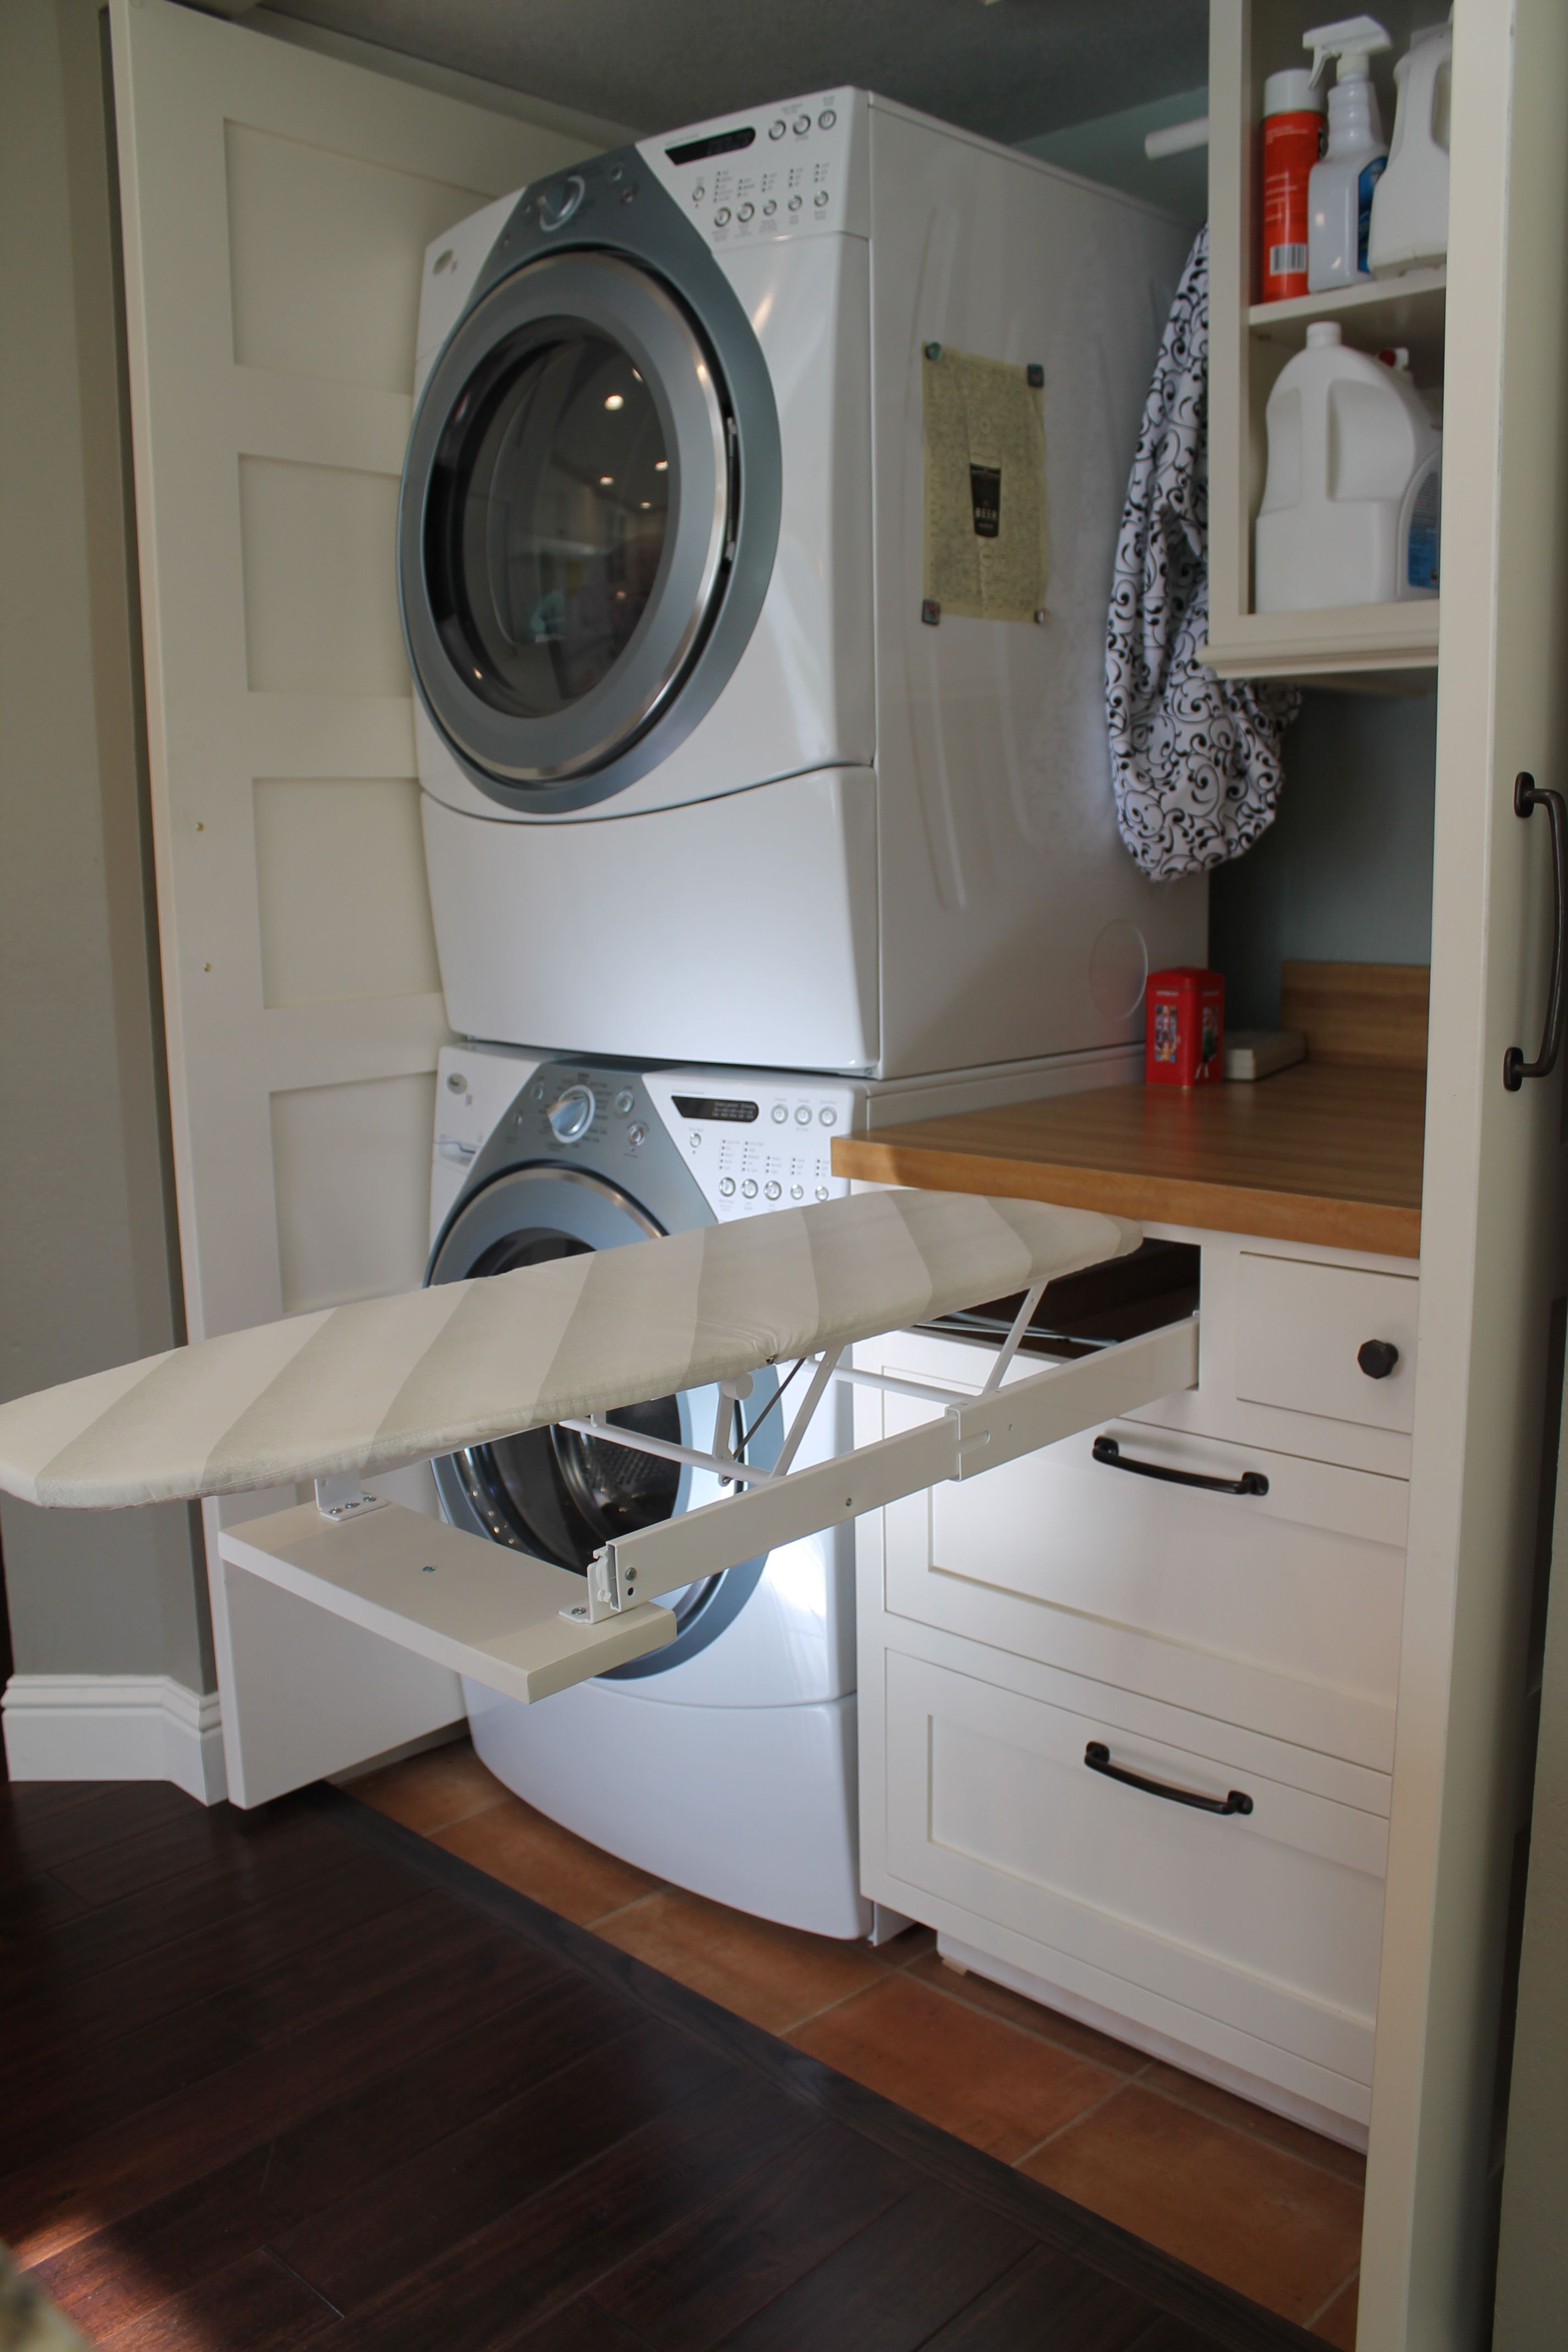 The Best Upgrade Fold Out Ironing Board Drawer In The Laundry Full Size Doors To Closet Room Organizer Master Closet Organization Bedroom Organization Closet